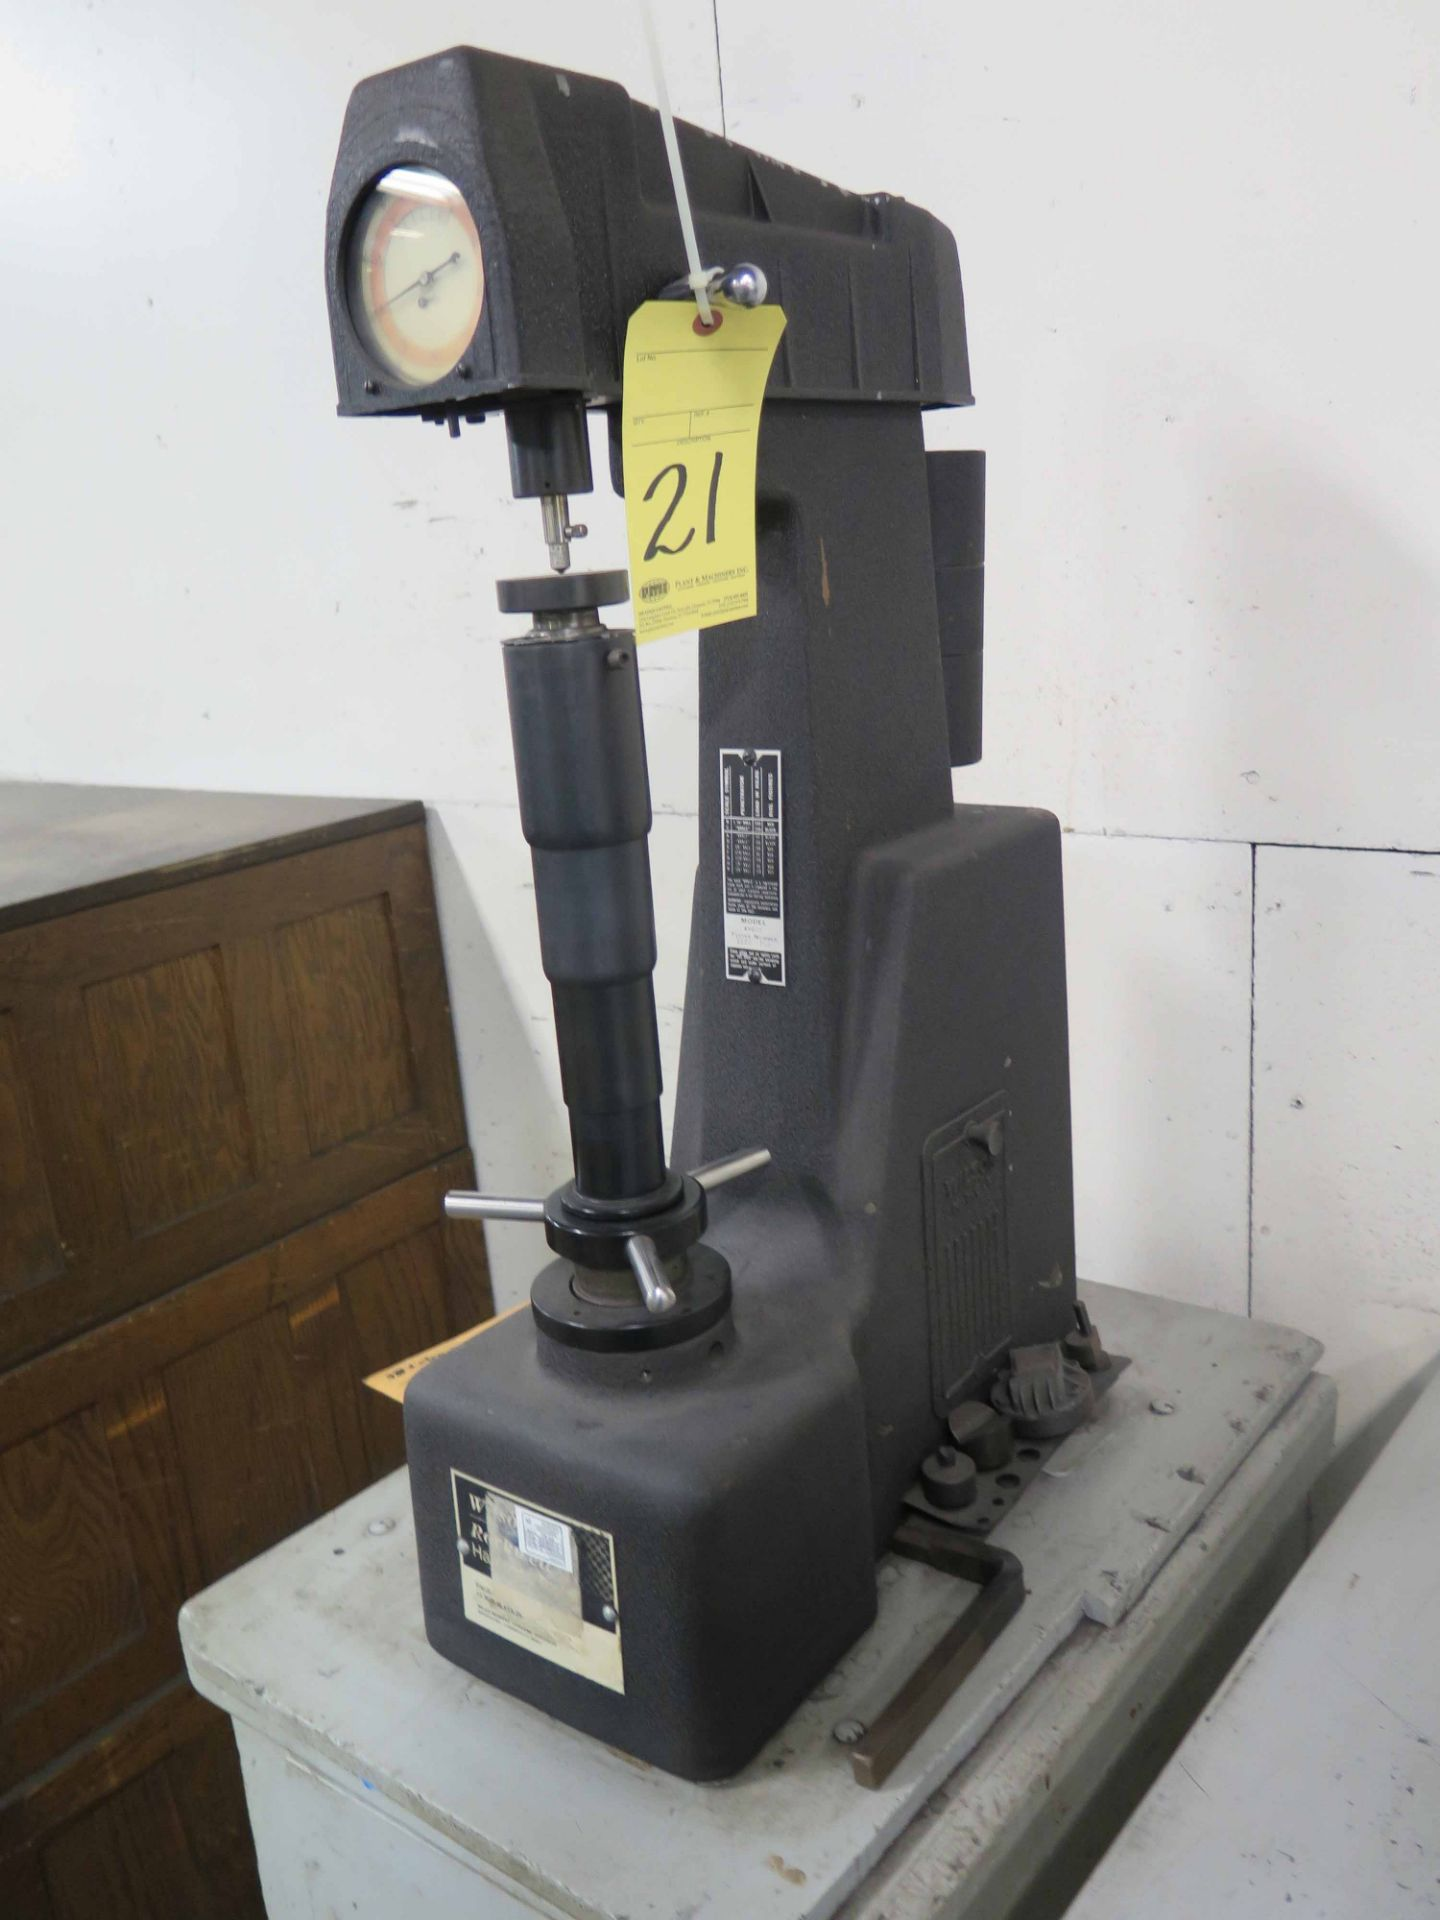 Lot 21 - HARDNESS TESTER, ROCKWELL MDL. 4-0UR, Tester No. 2288-708, mounted on wooden cabinet